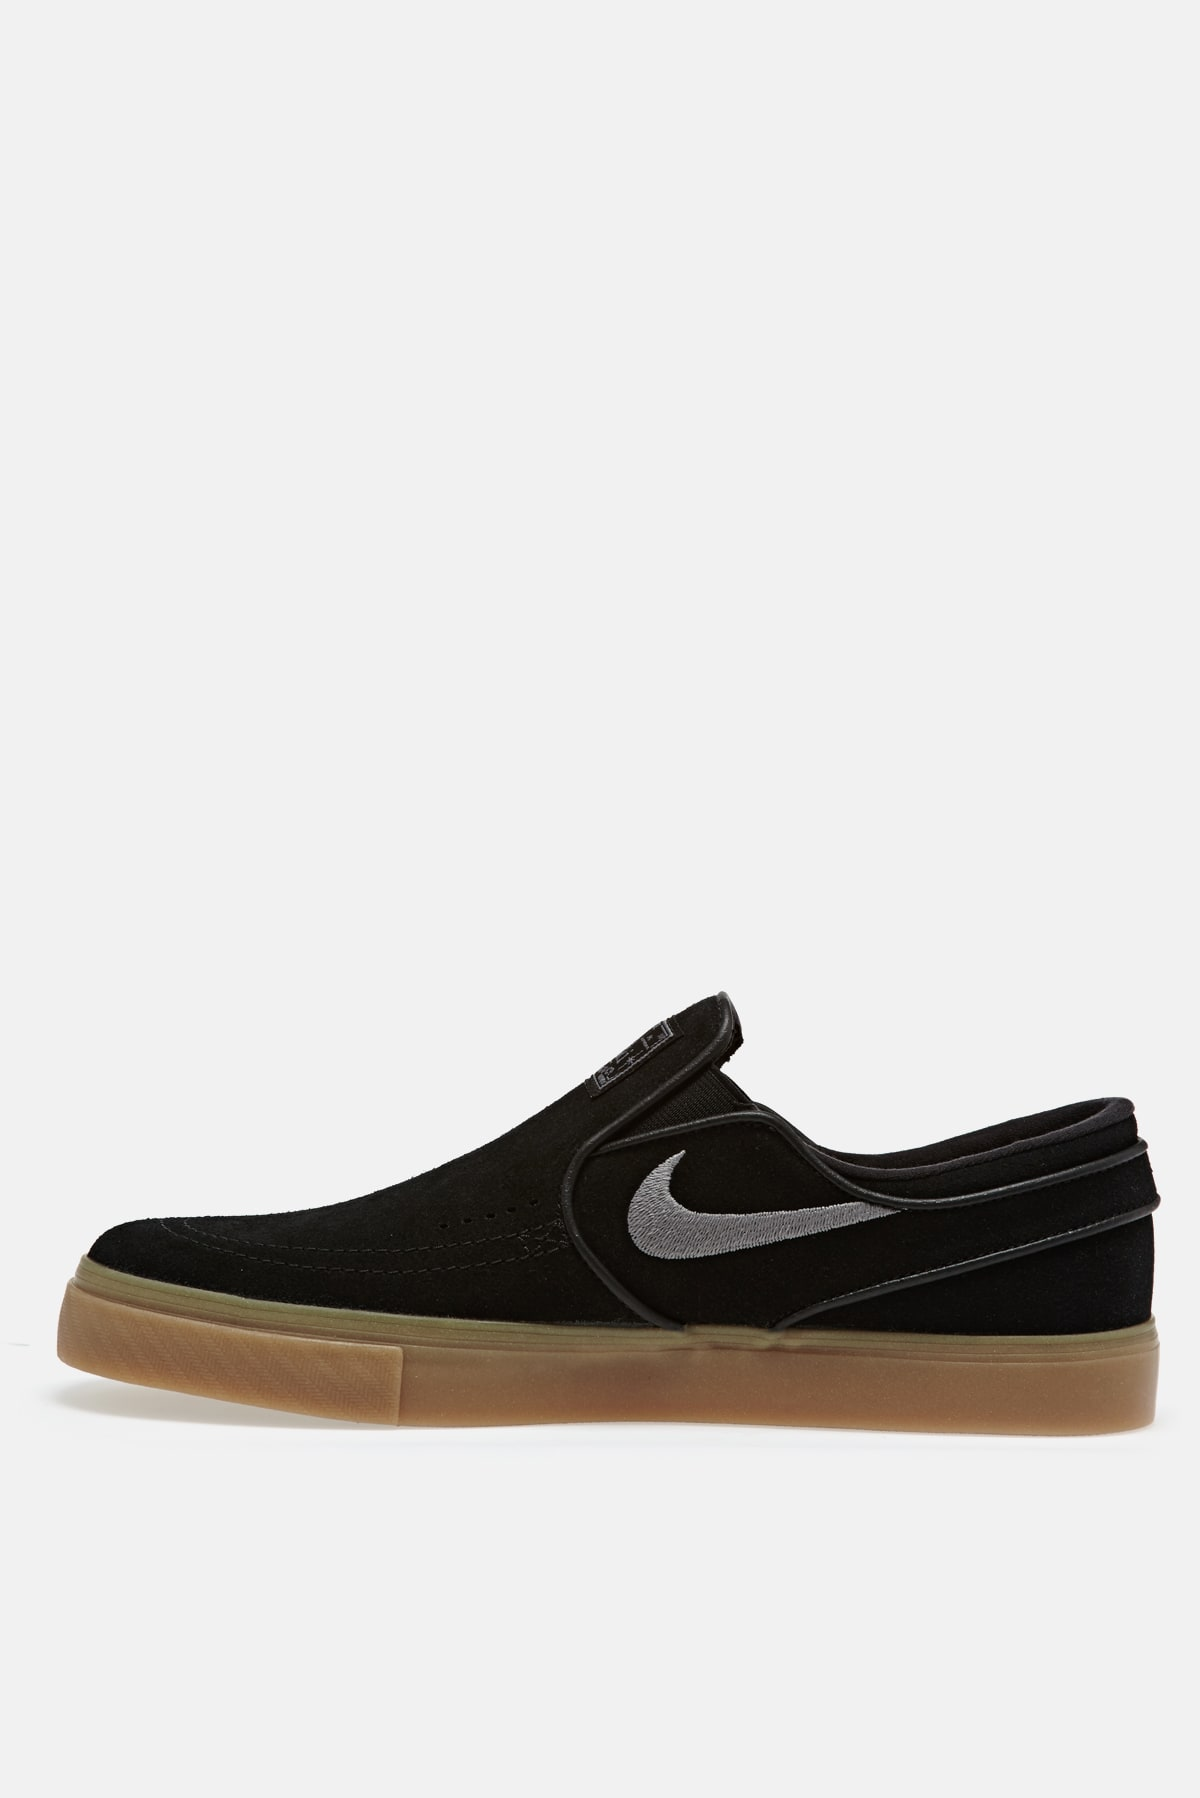 471a008f7 Nike SB Zoom Stefan Janoski Slip On Shoes available from Priory